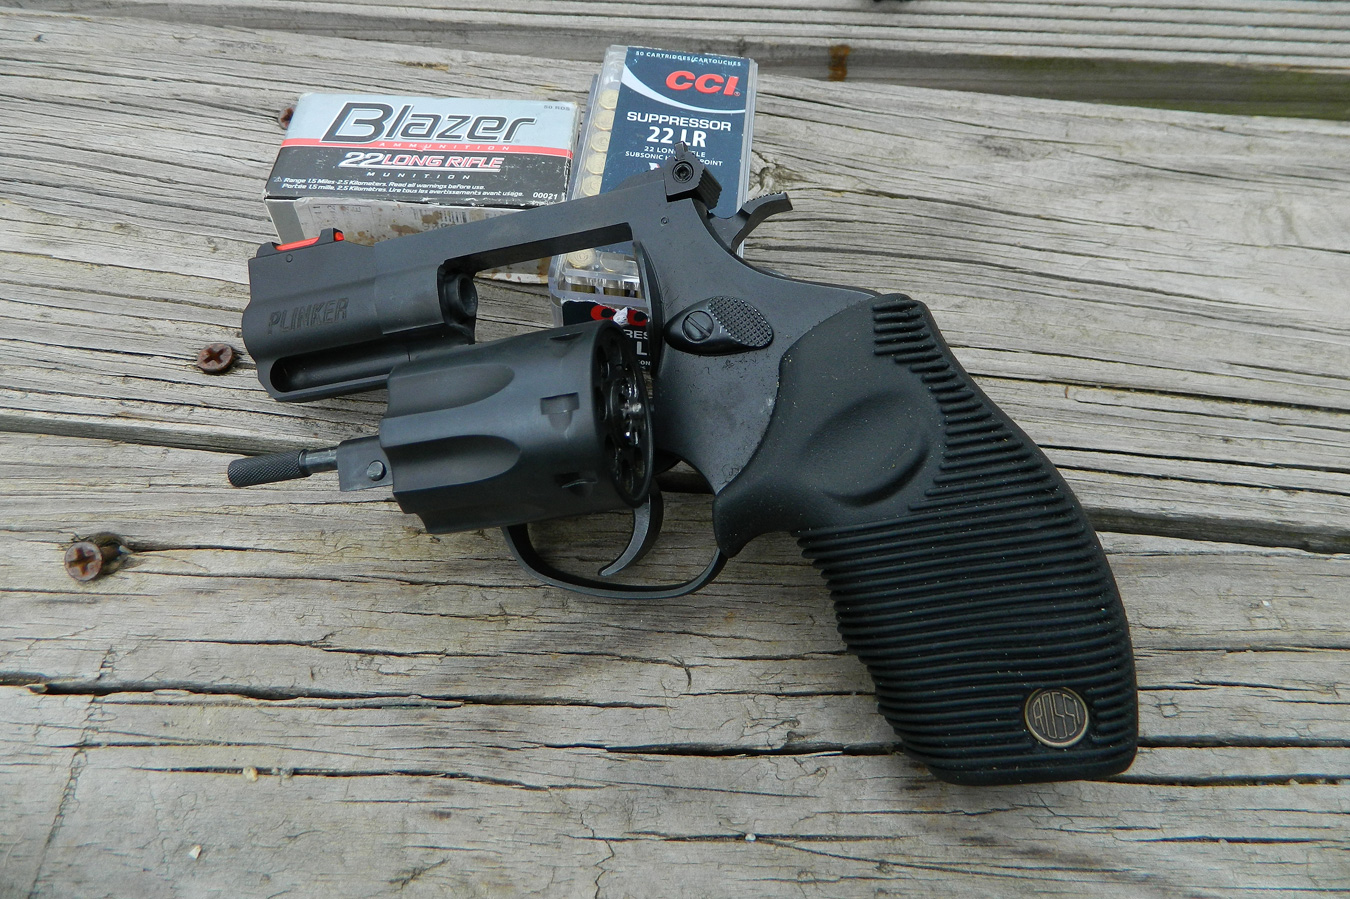 Rossi Plinker revolver with two boxes of ammunition